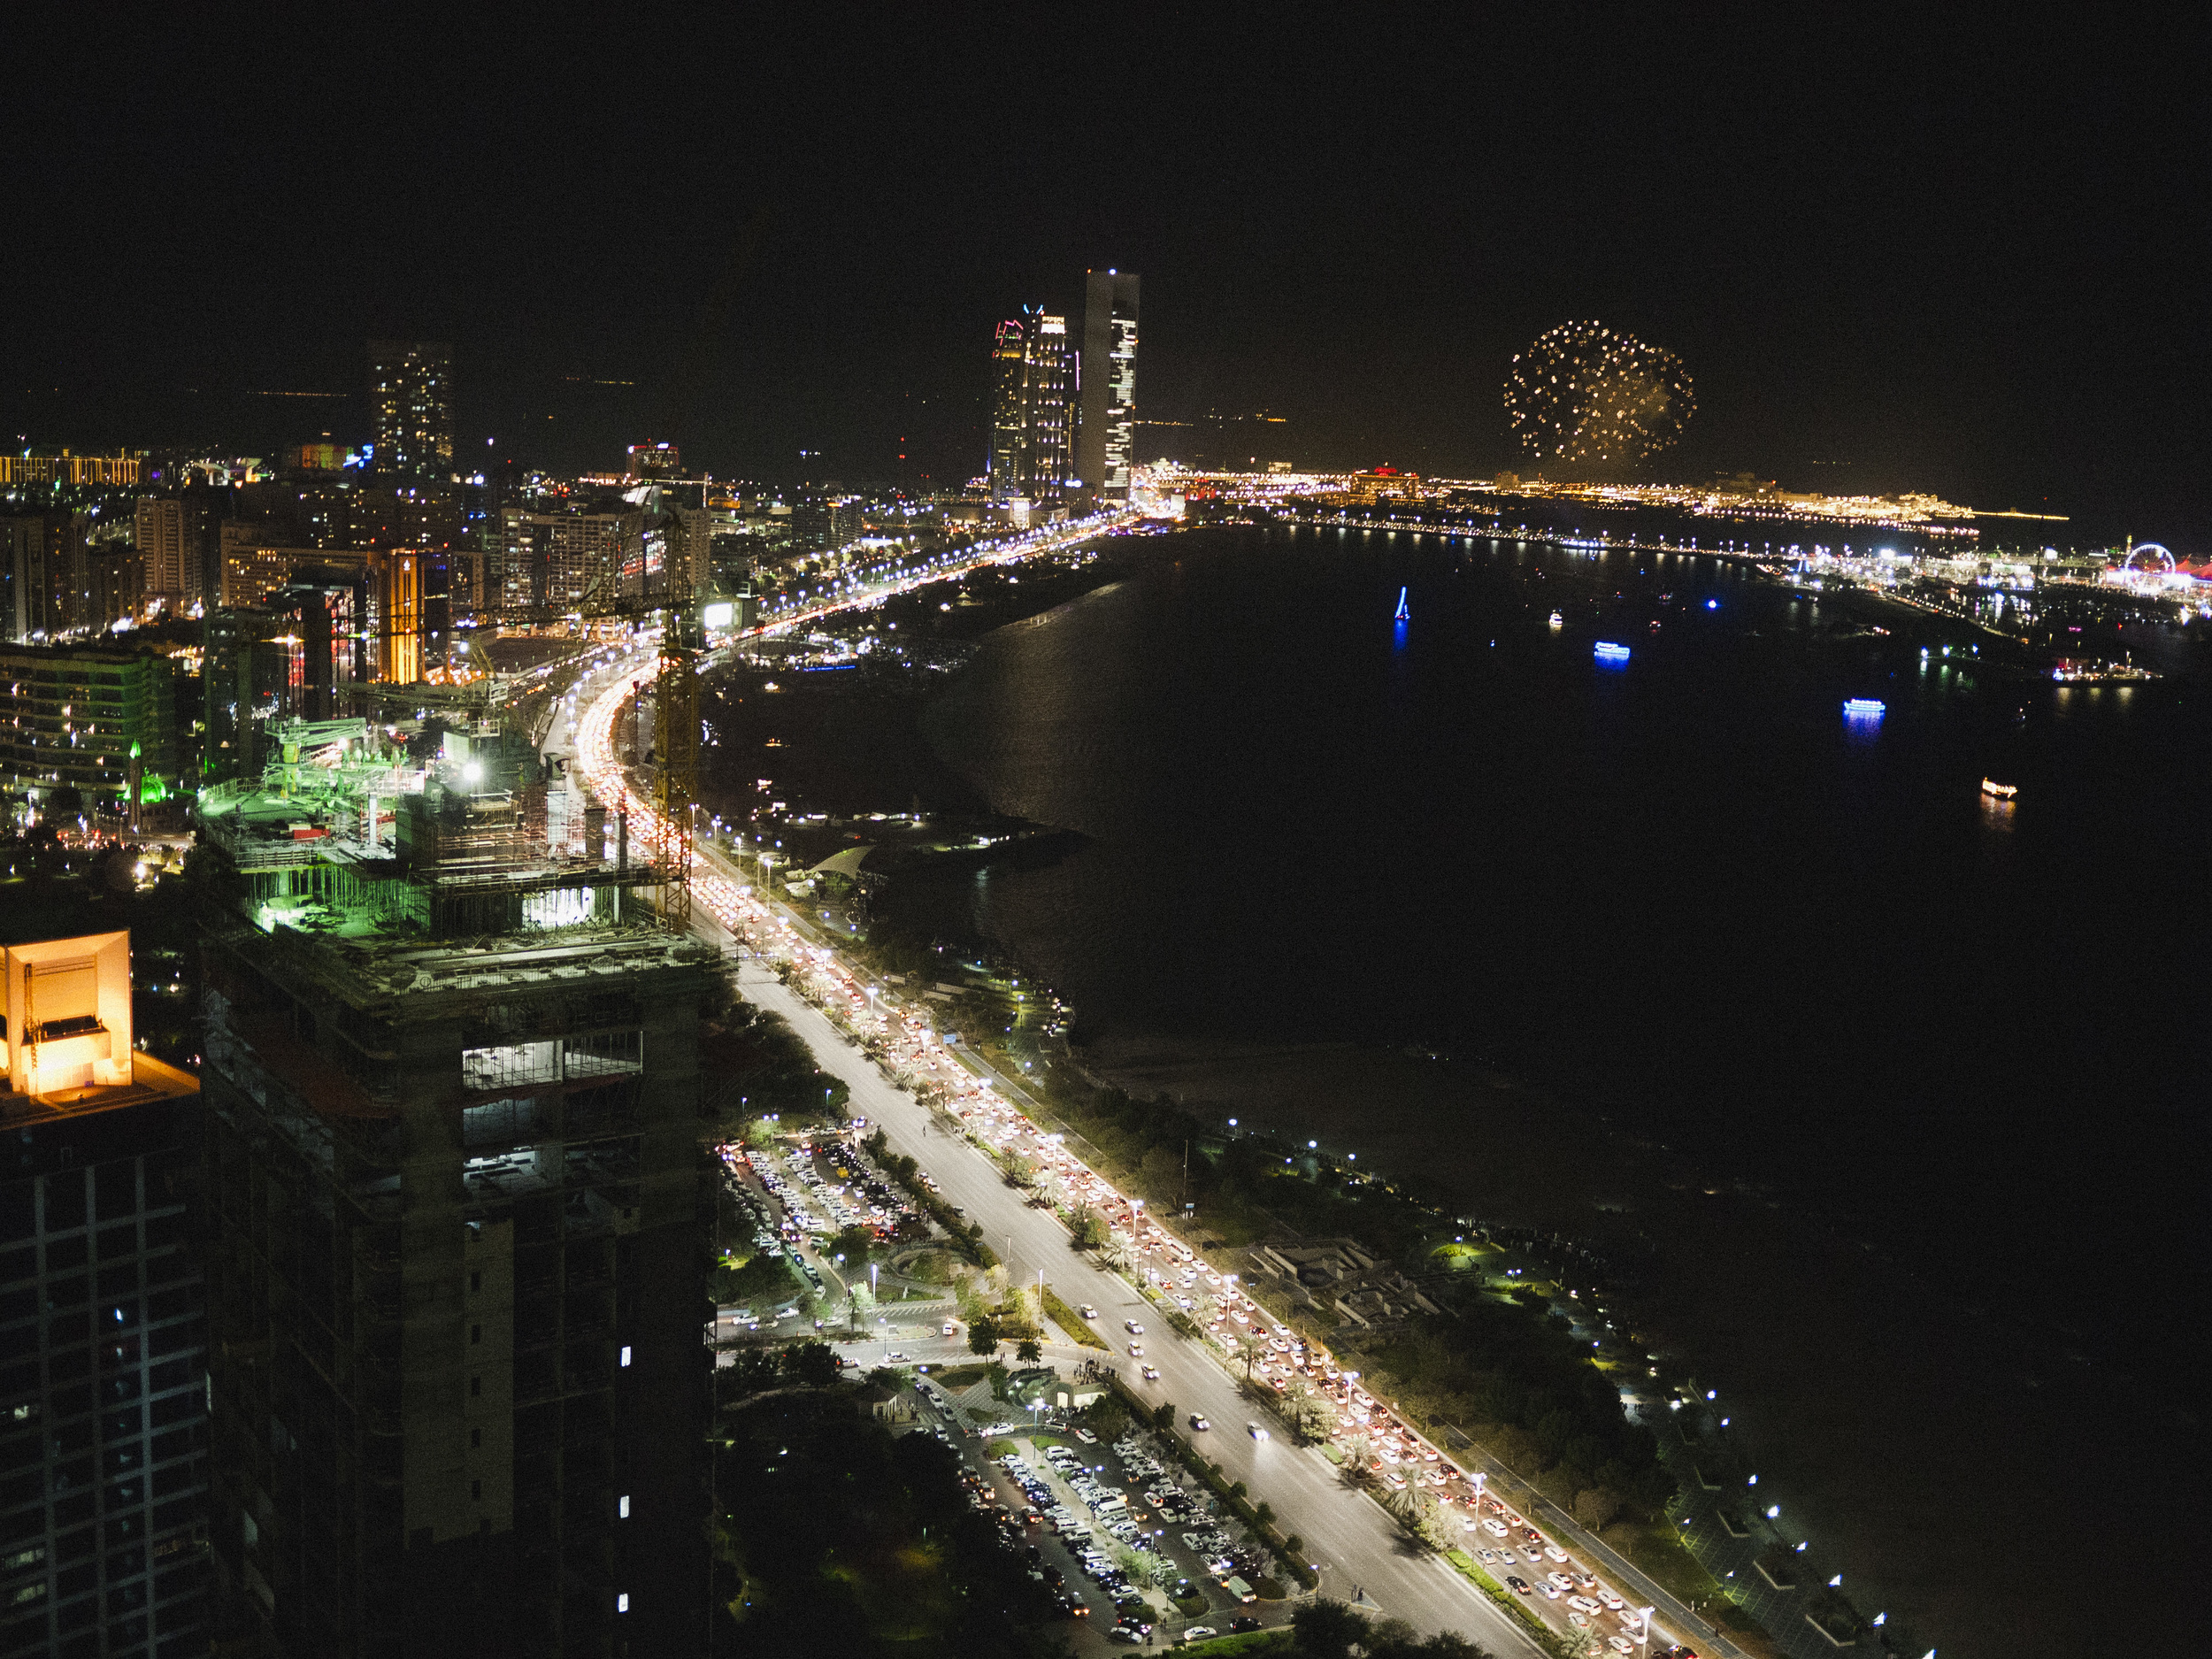 Watching fireworks back at Landmark Tower in Abu Dhabi for New Year's Eve